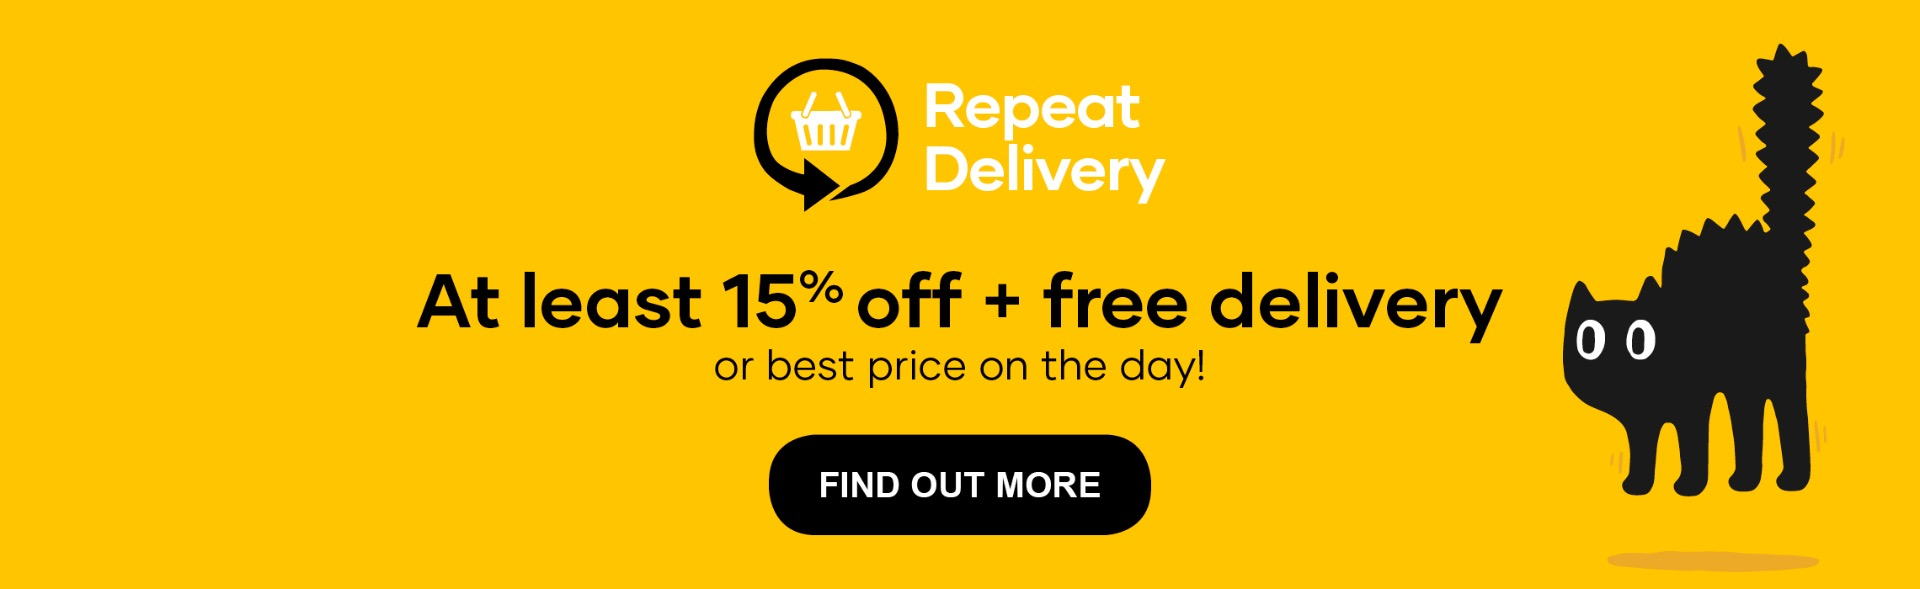 Cat Repeat delivery   Get at least 15 percent off and free delivery   with repeat delivery   learn more